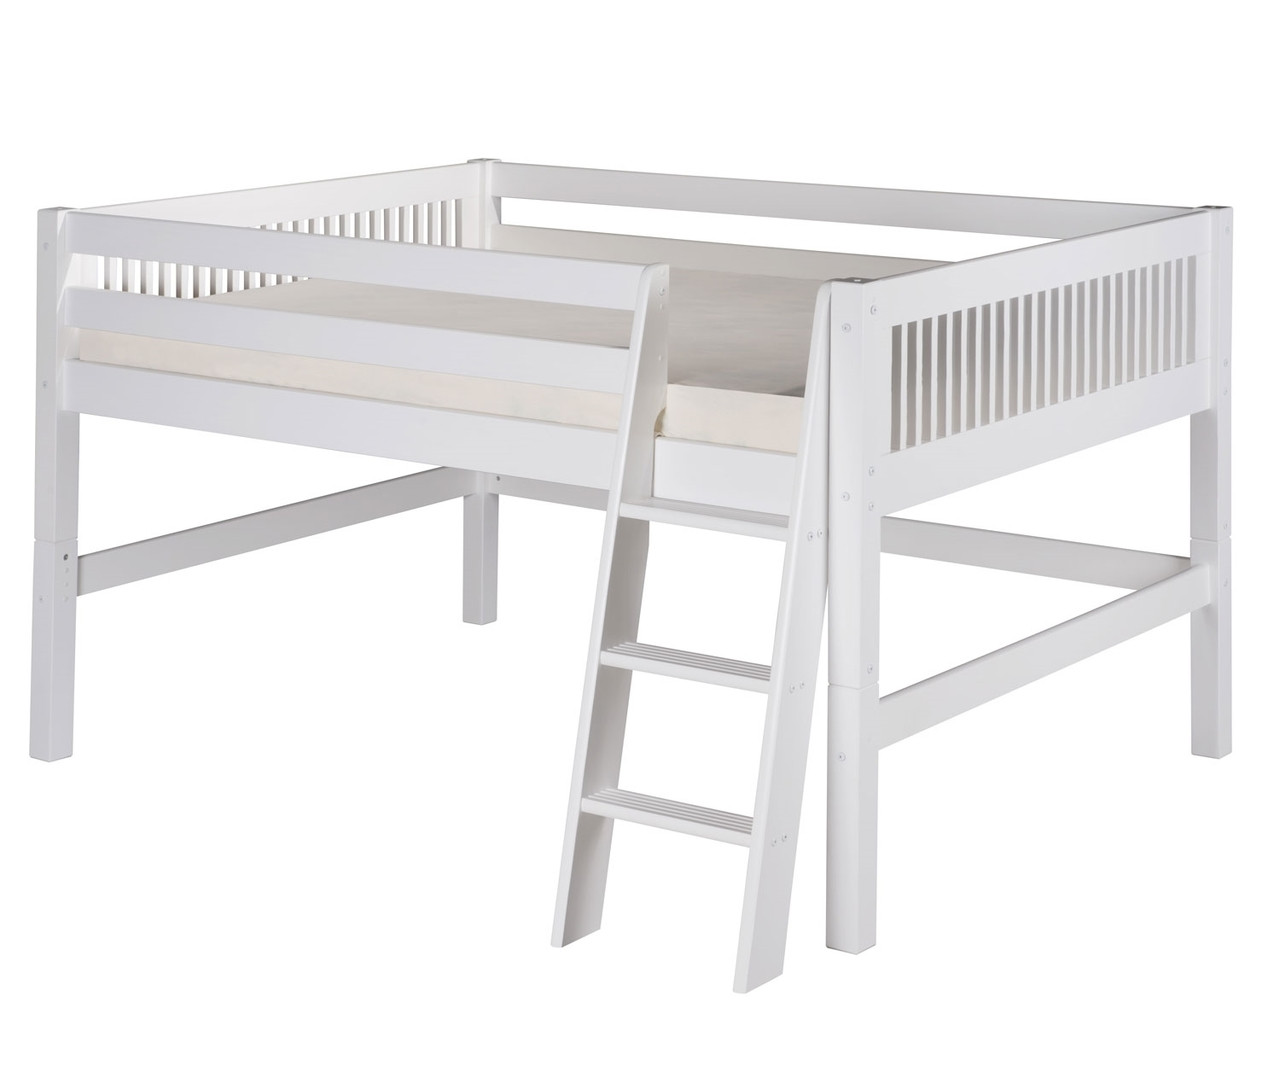 Camaflexi Full Loft Bed In White Finish E413f Camaflexi Furniture